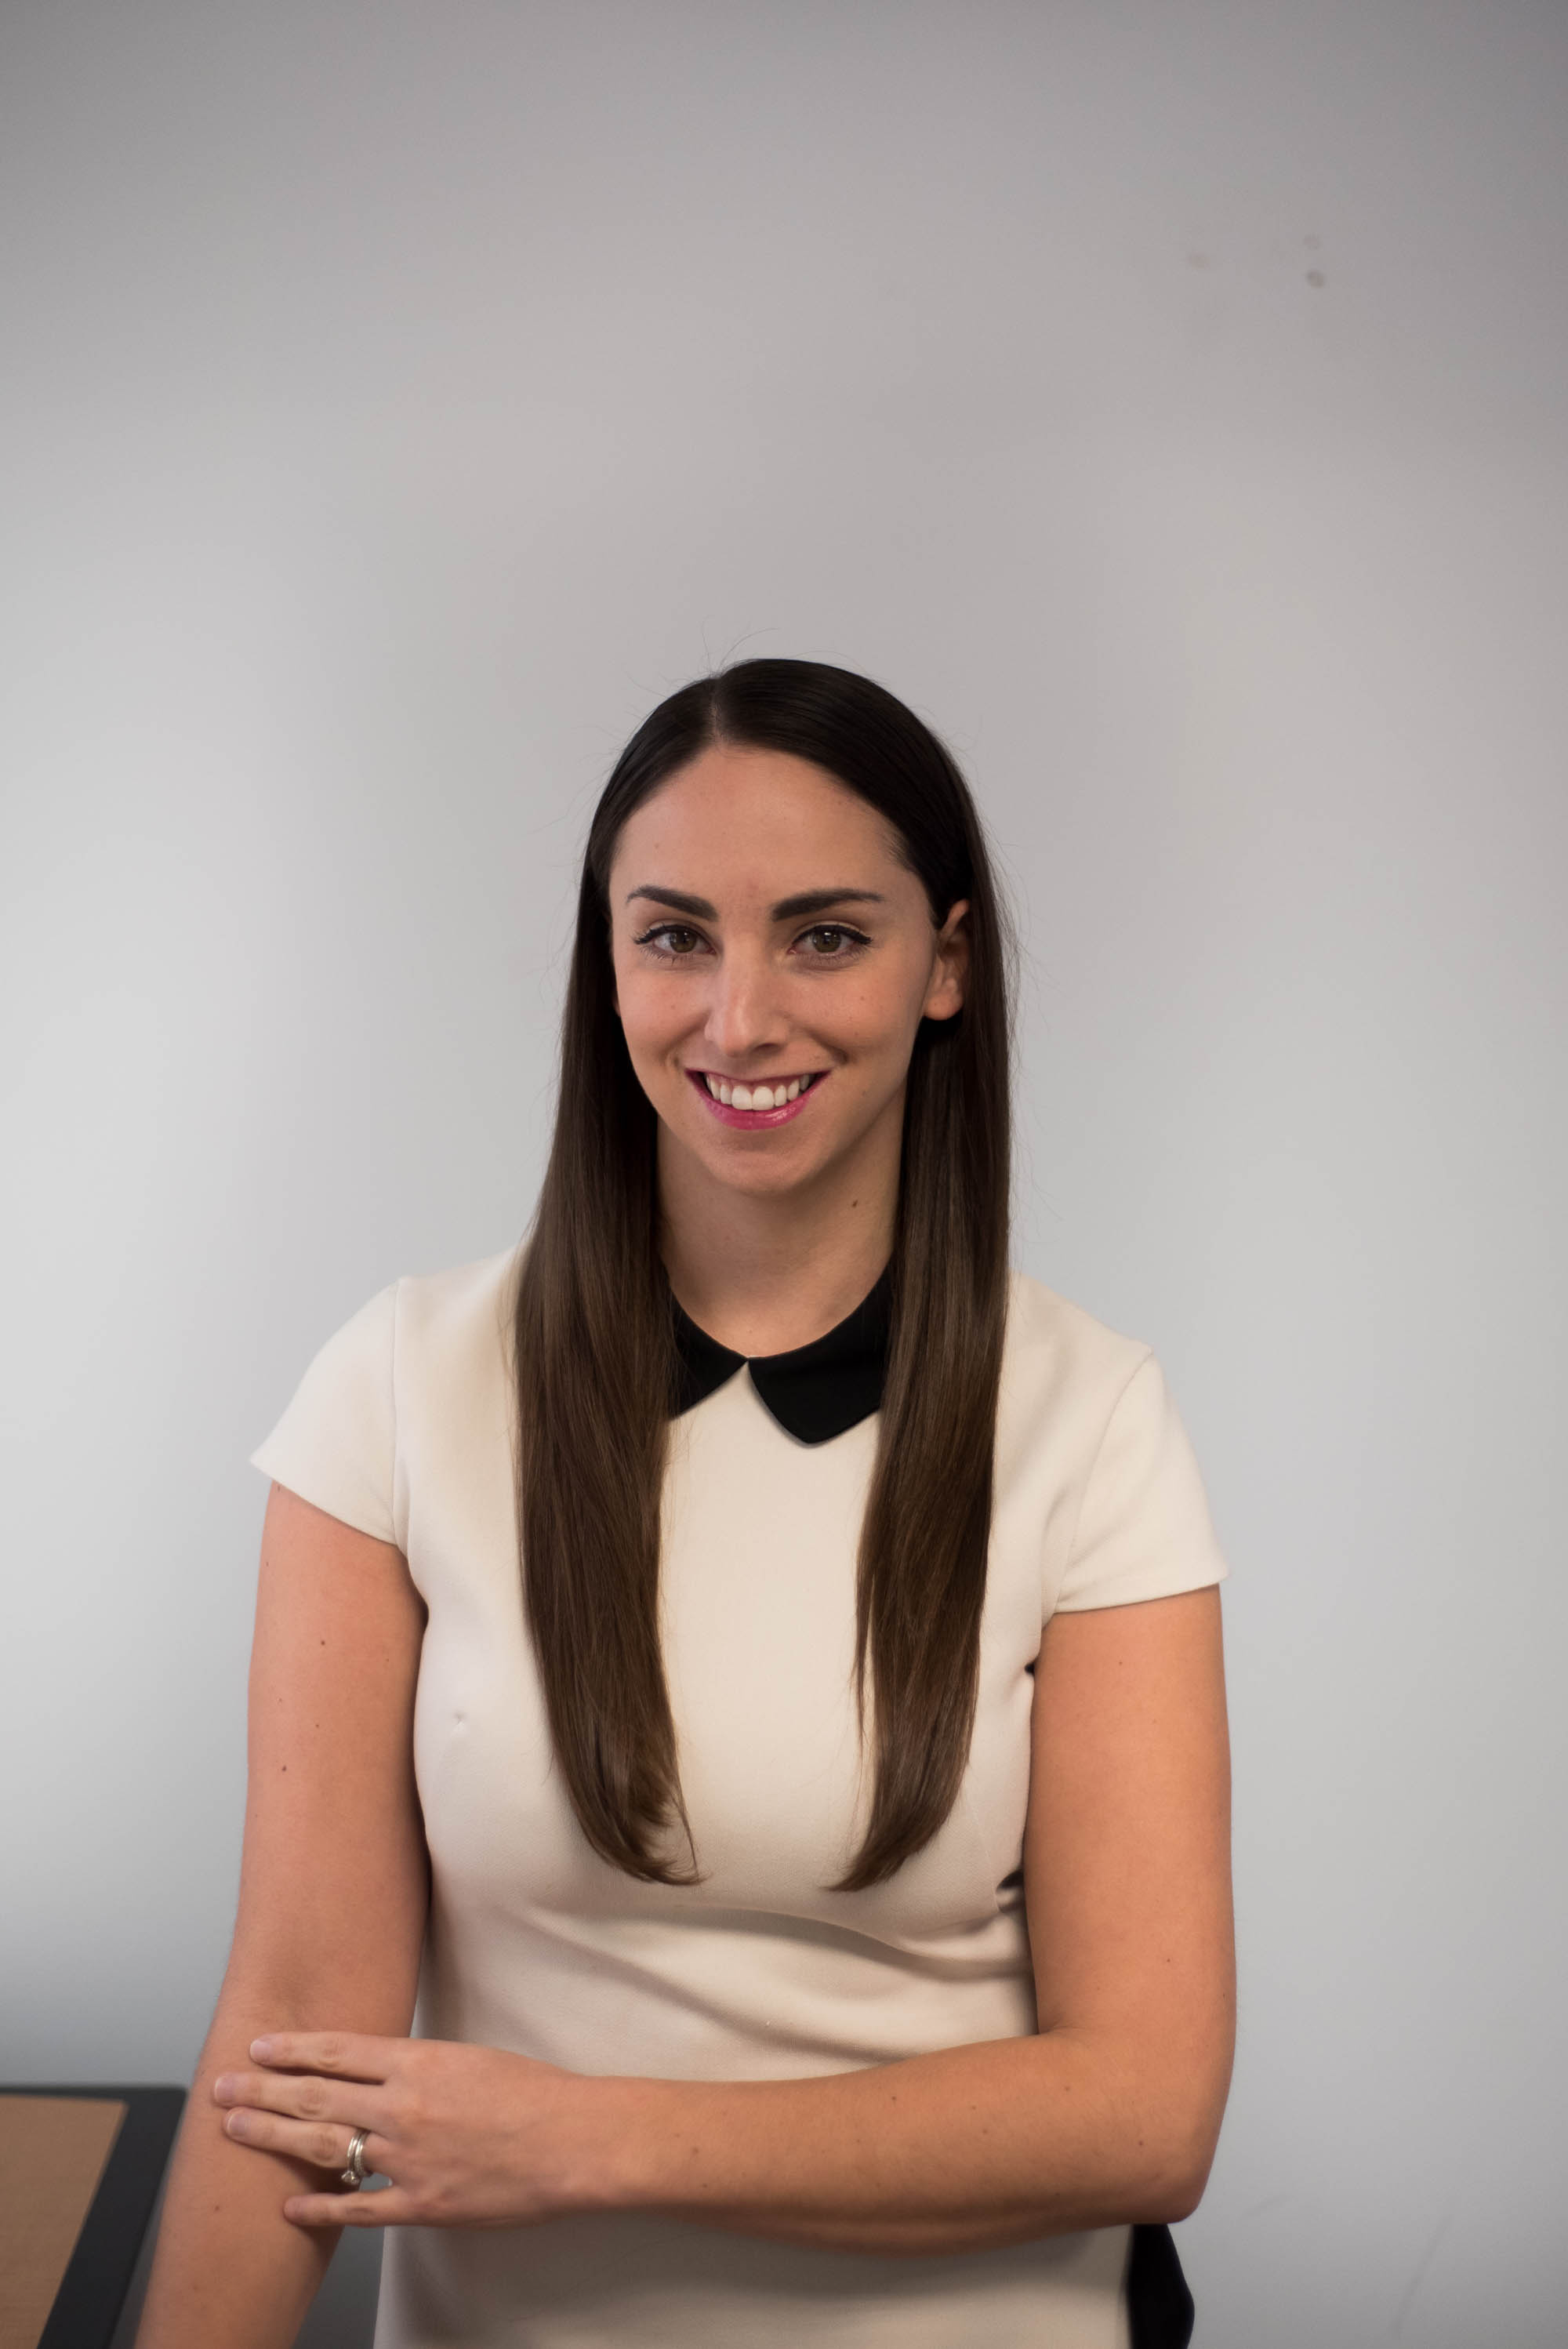 Managing Partner - Michele graduated with an M.S. in Economics from University at Buffalo in 2010. She has worked in social media for 9 years including managing social media accounts in-house for Fortune-500 companies, blogging for a non-profit, and eventually leaving to begin her own businesses. Michele now lives in Victor with her husband Chris and two sons. Michele is passionate about serving her community, involving her family in her work-life, and helping other businesses and entrepreneurs grow.